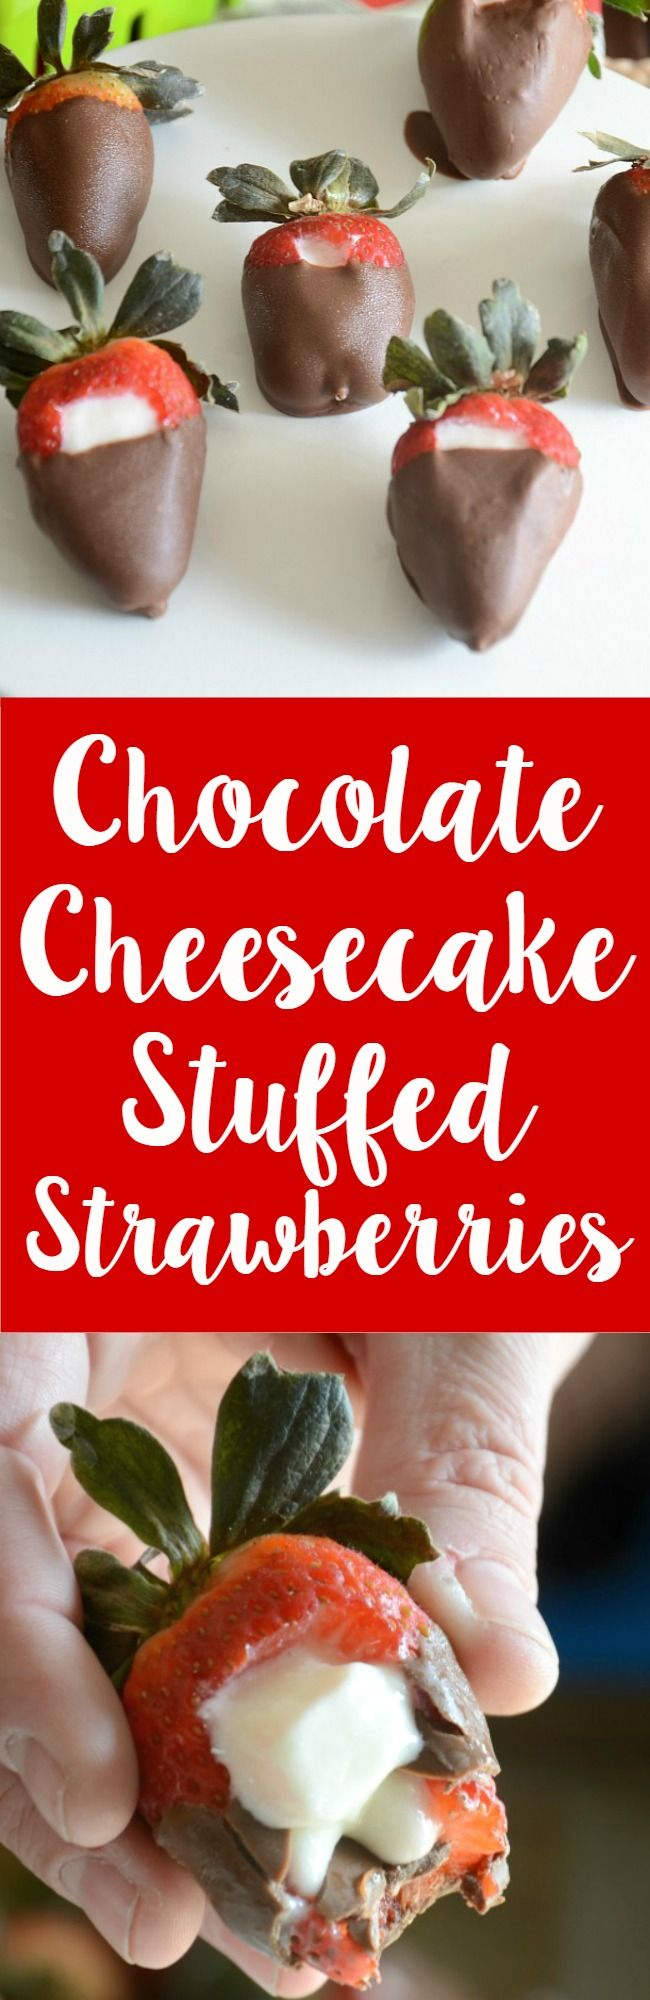 Easy and so yummy - chocolate covered cheesecake stuffed strawberries! Make these for your sweetie (or yourself!) today!